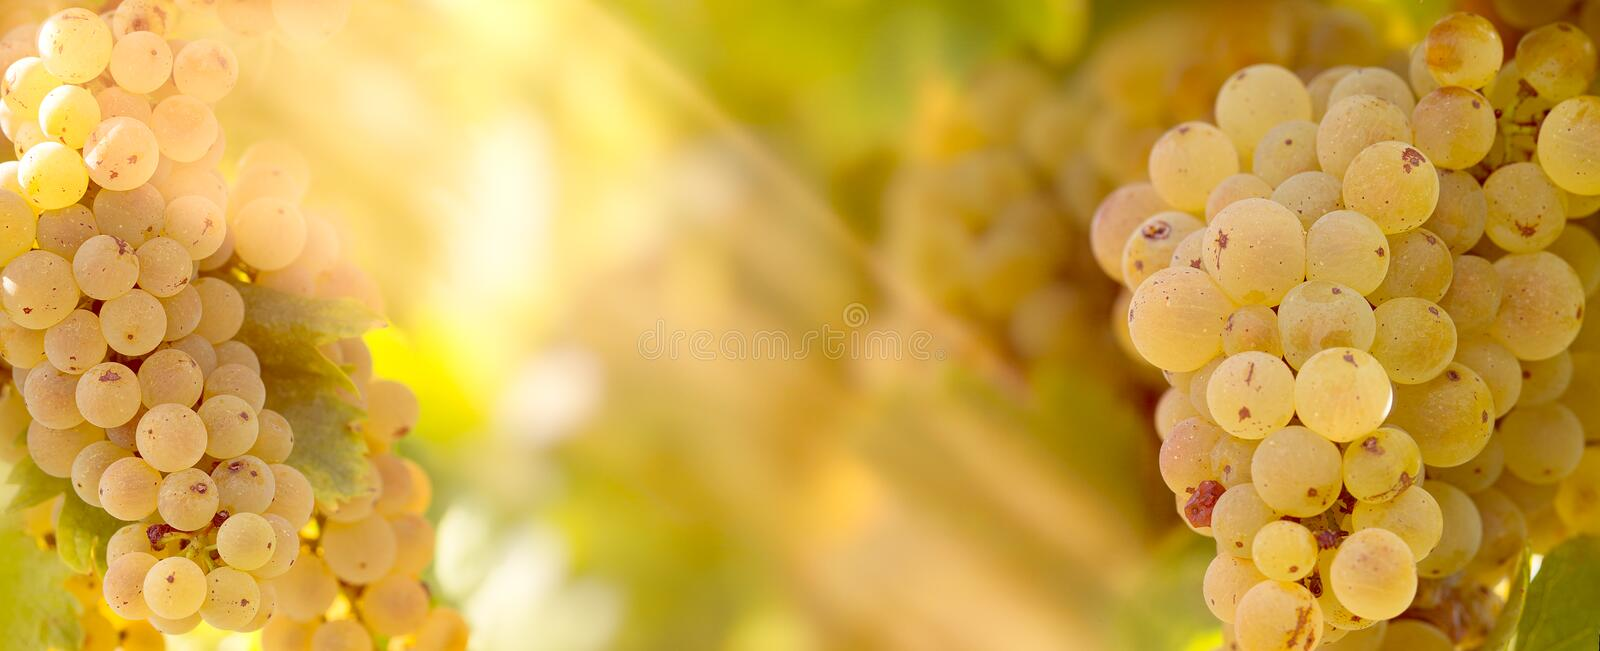 Grape Riesling wine grape on grapevine in vineyard lit by sunlight-sun rays. Grape Riesling wine grape on grapevine in vineyard - on grapevine royalty free stock images